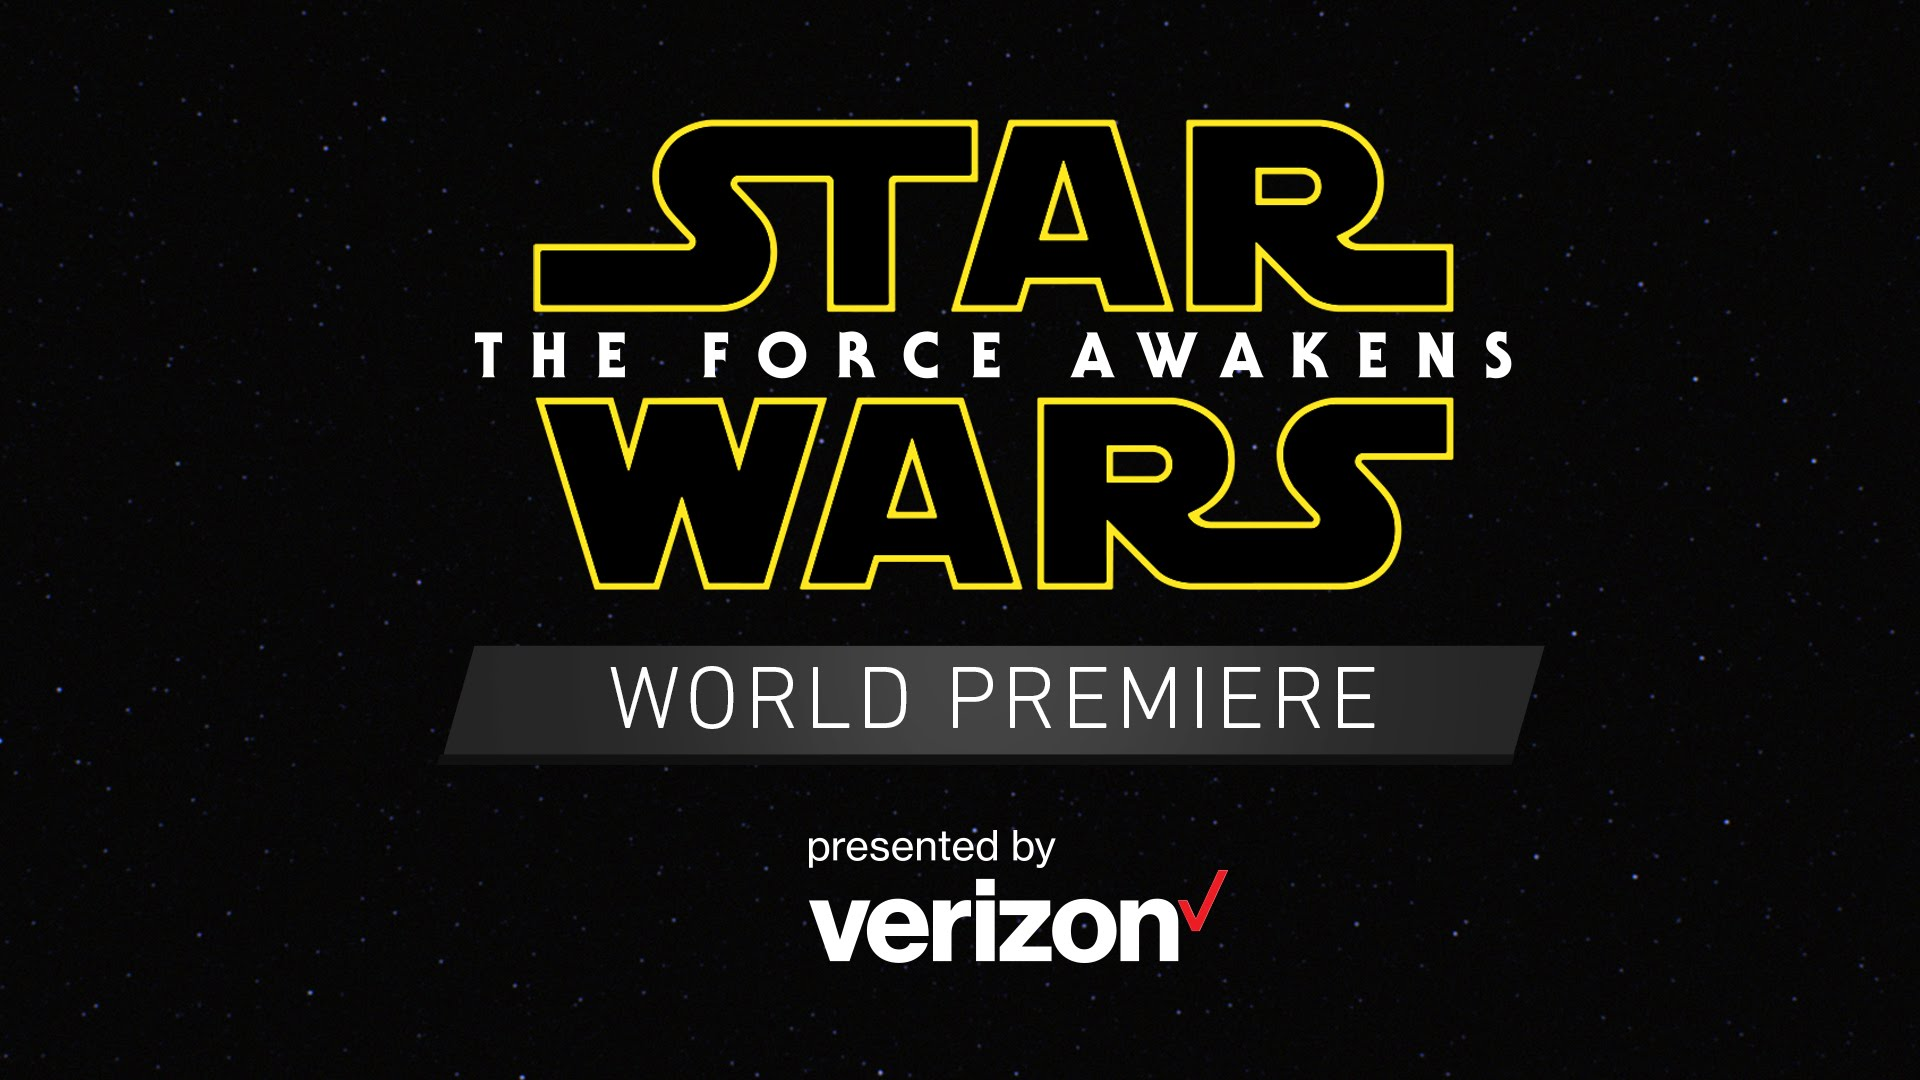 Star Wars: The Force Awakens World Premiere Red Carpet